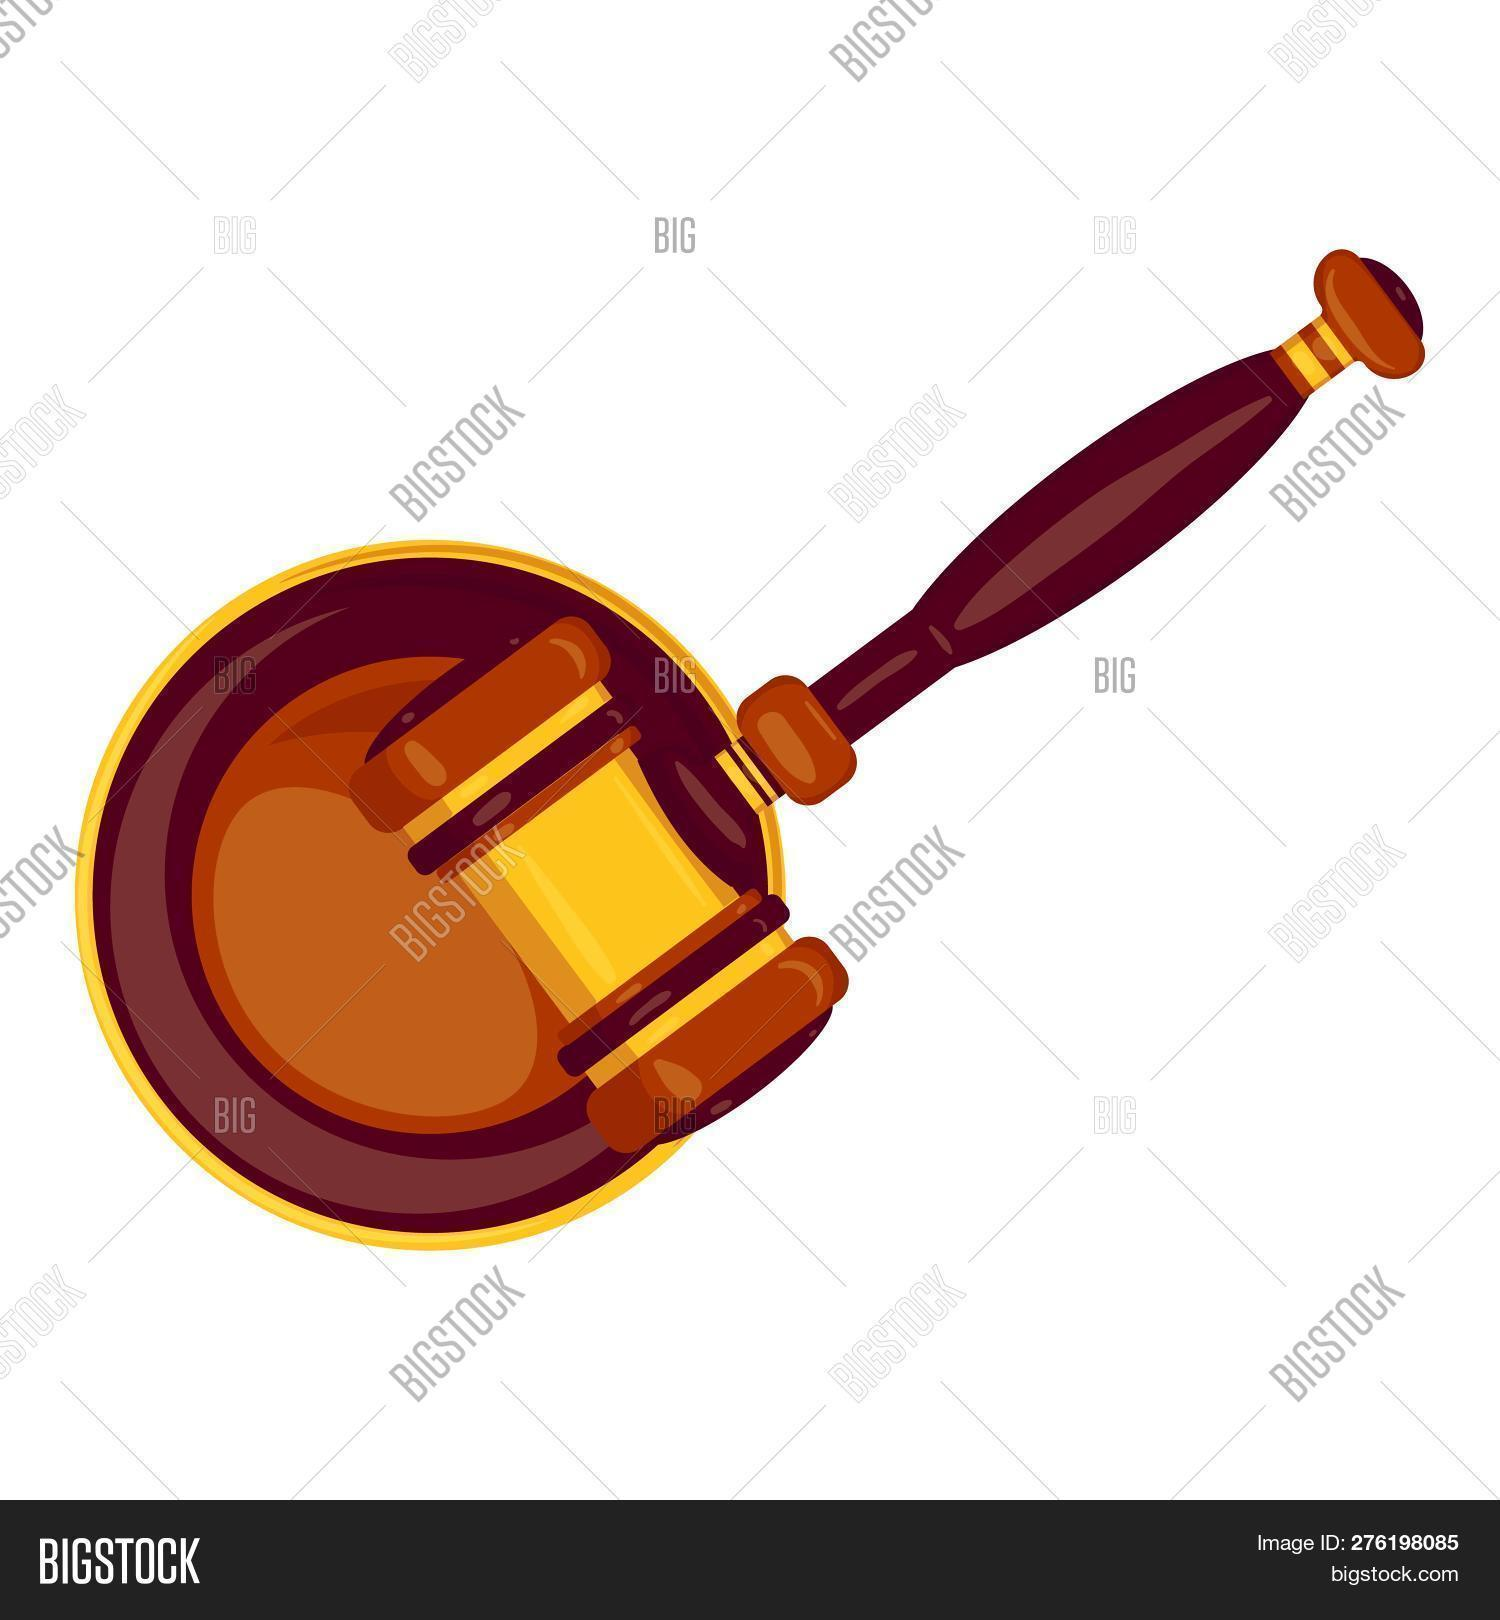 Top View Wood Gavel Image Photo Free Trial Bigstock